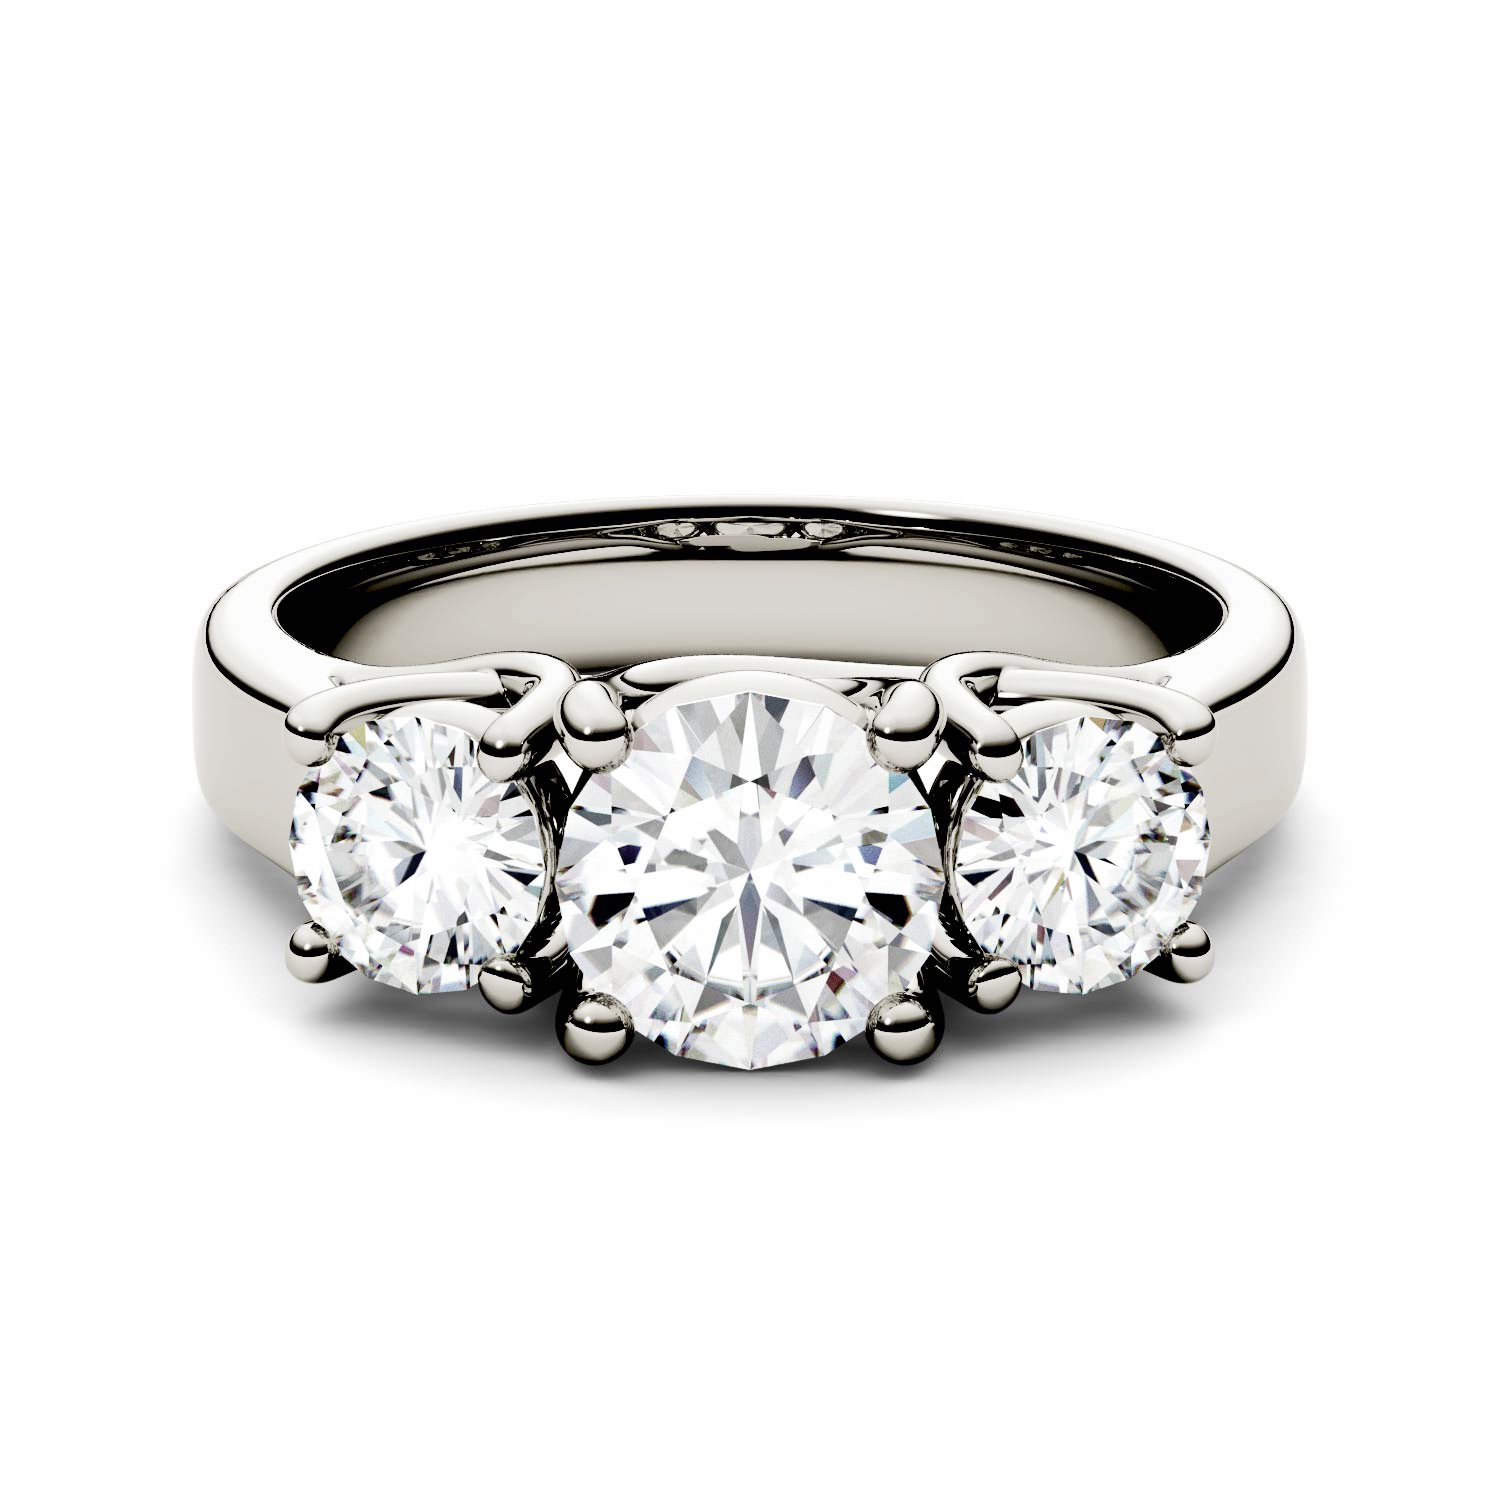 Forever One Round 6.5mm Three Stone Moissanite Ring-size 8, 2.00cttw DEW (D-E-F) By Charles & Colvard